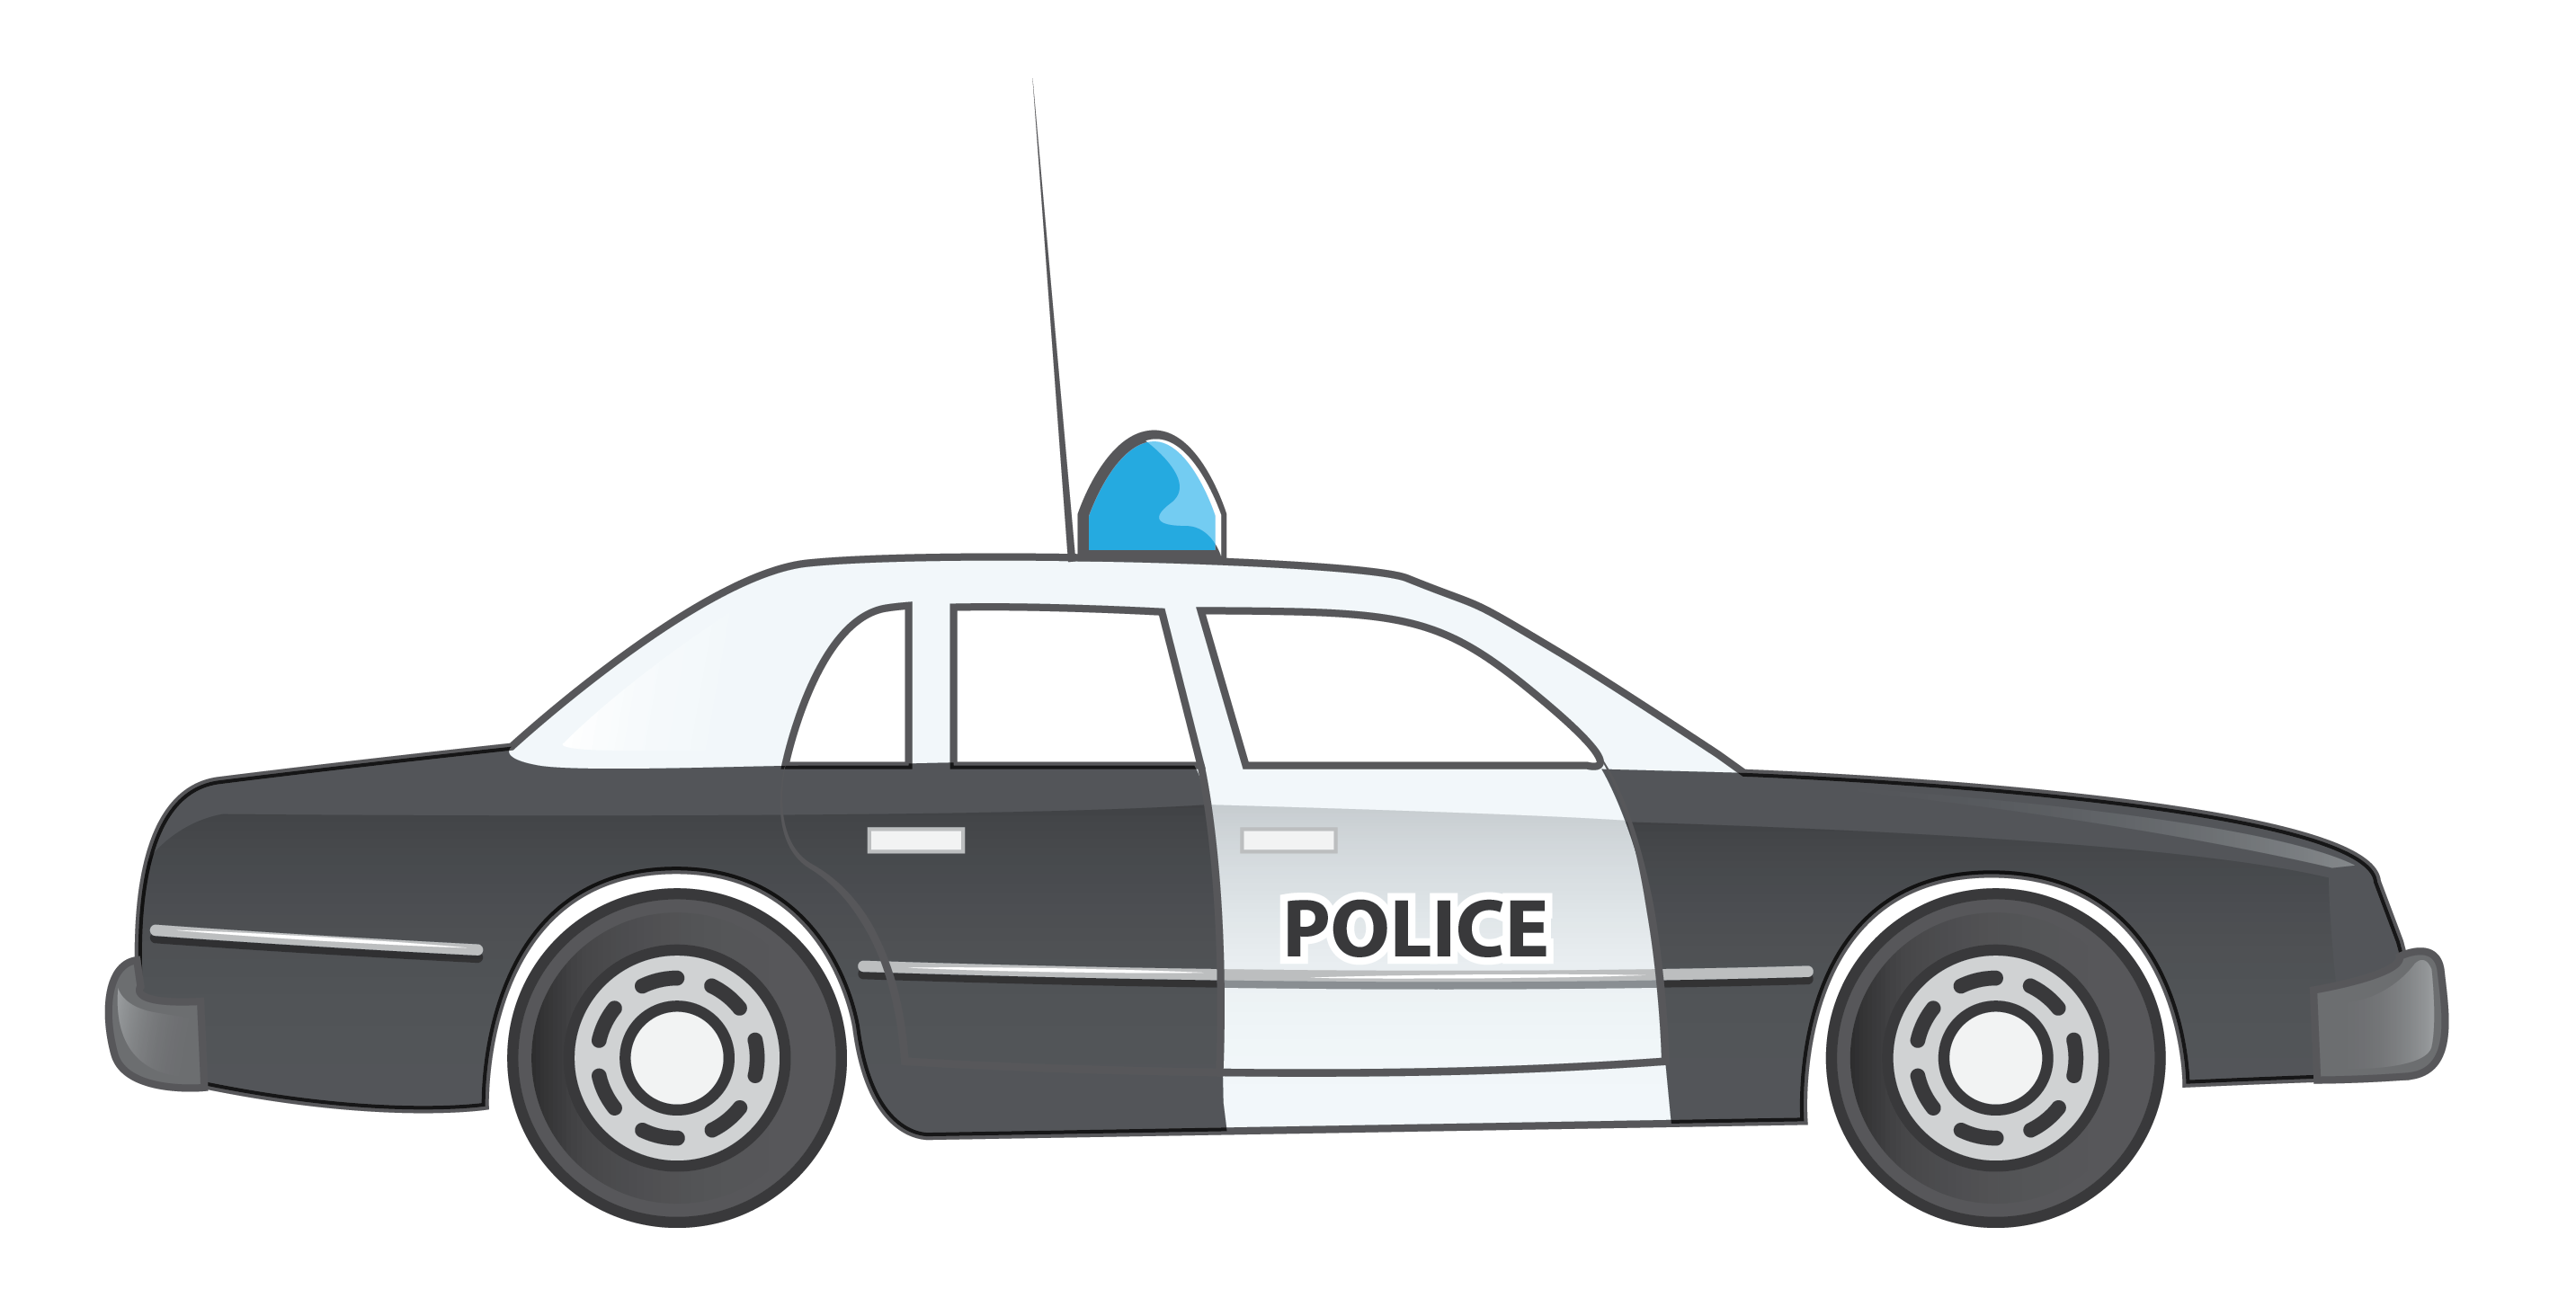 Patrol clipart police vehicle. Free eagle cliparts download